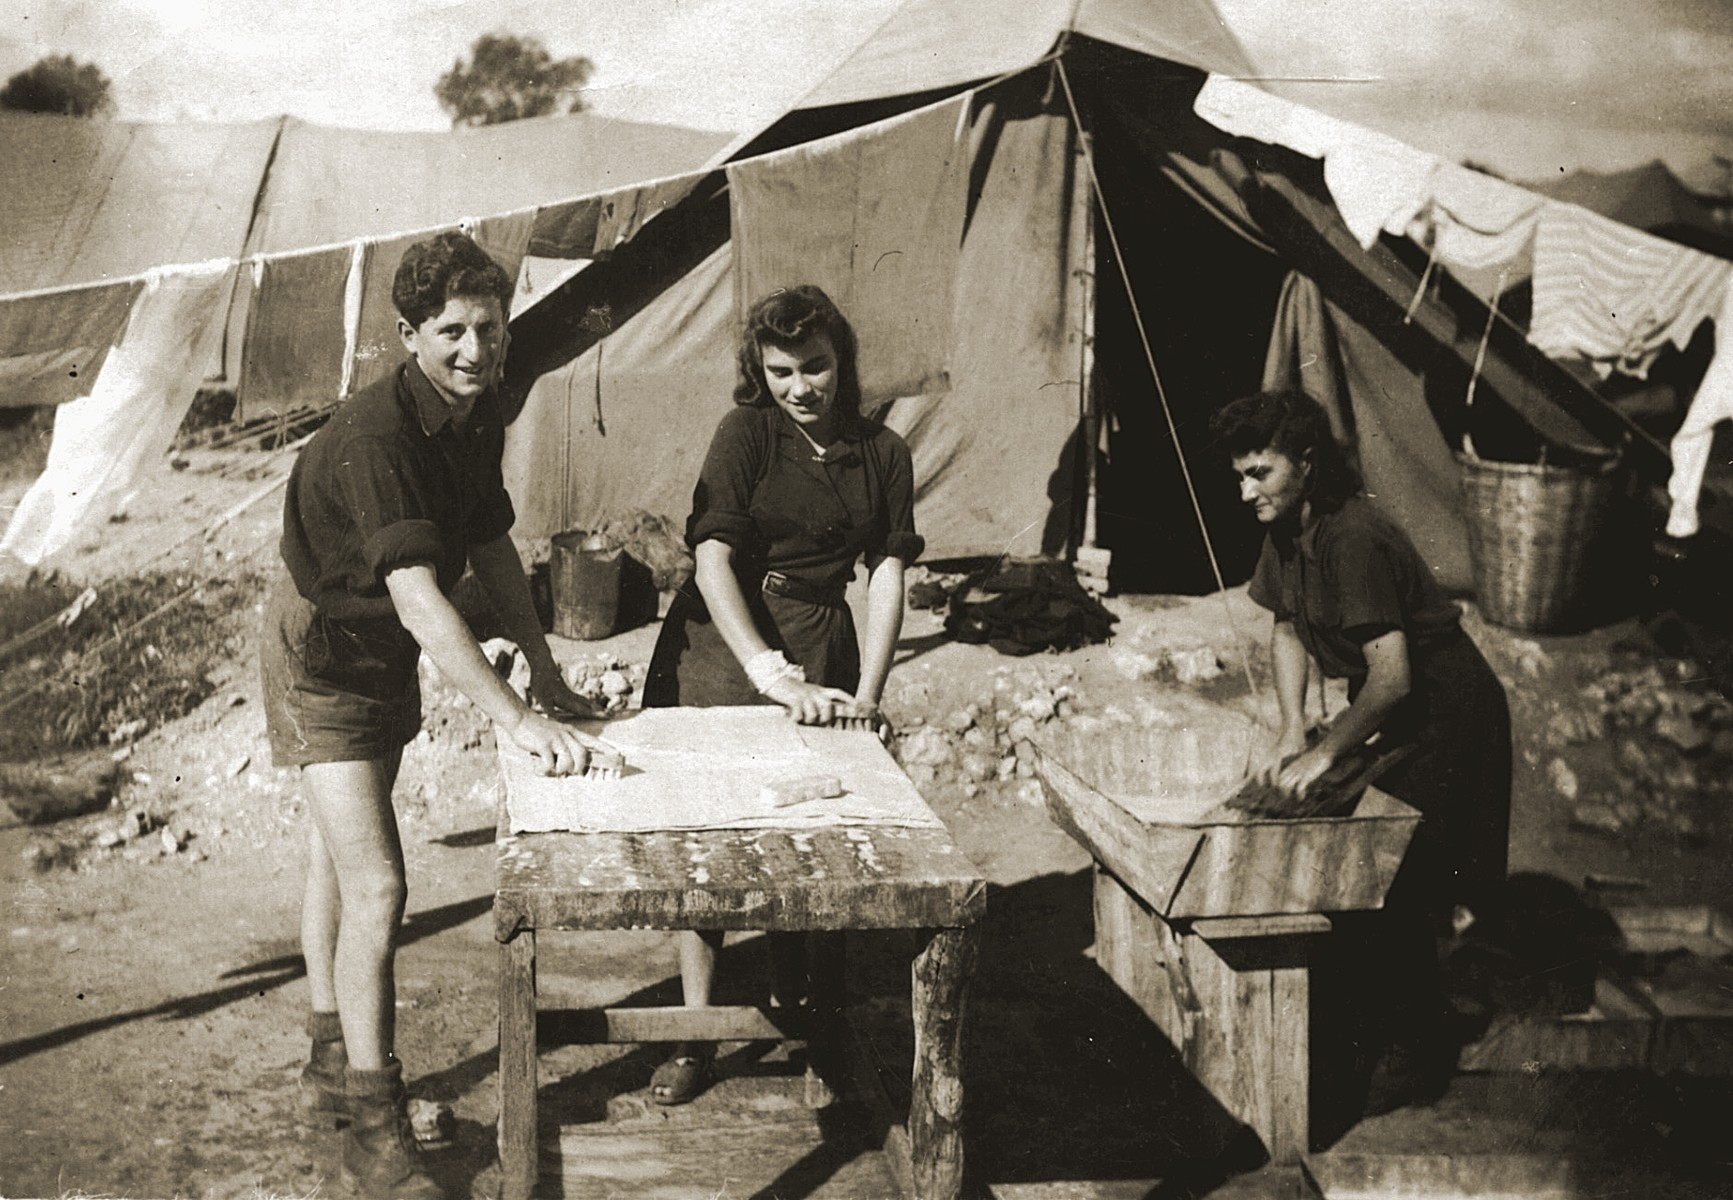 Aharon Zelmanovicz, Blanca Kuklinska and Chana Zelmanovicz do their laundry on a table outside a tent in the Cyprus summer Camp 55.